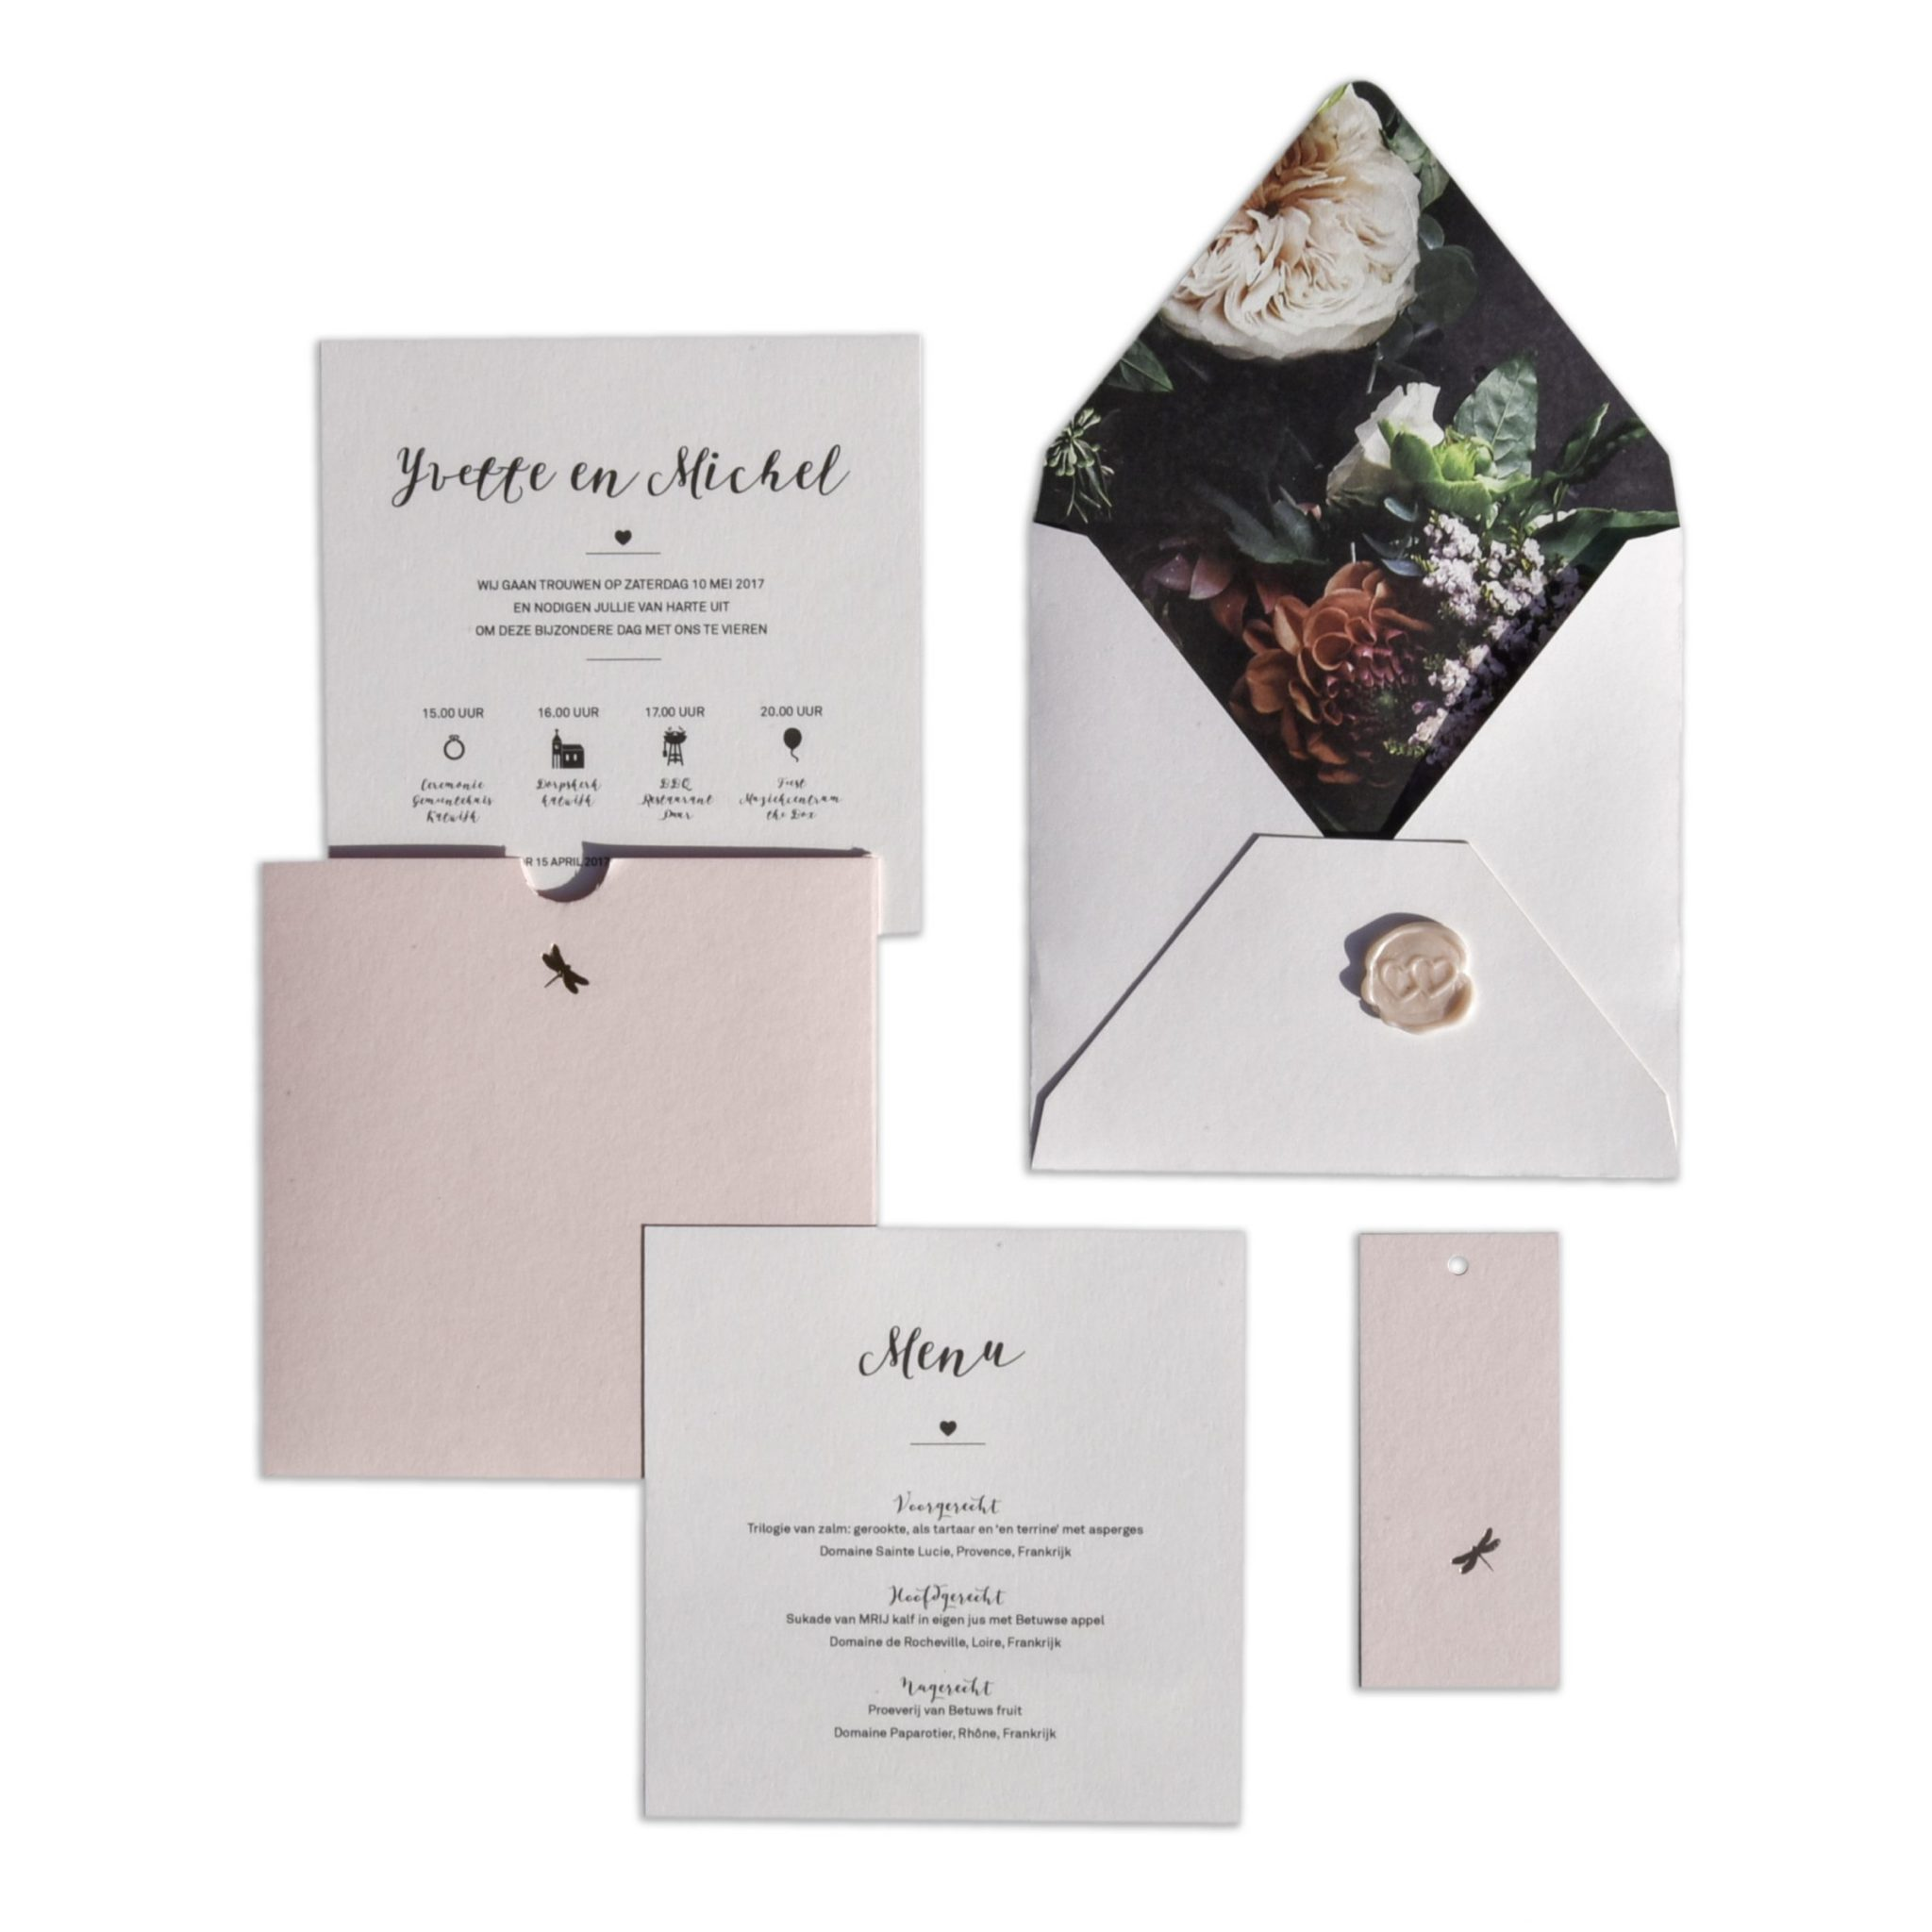 yvette_michel trouwkaart wedding invitation